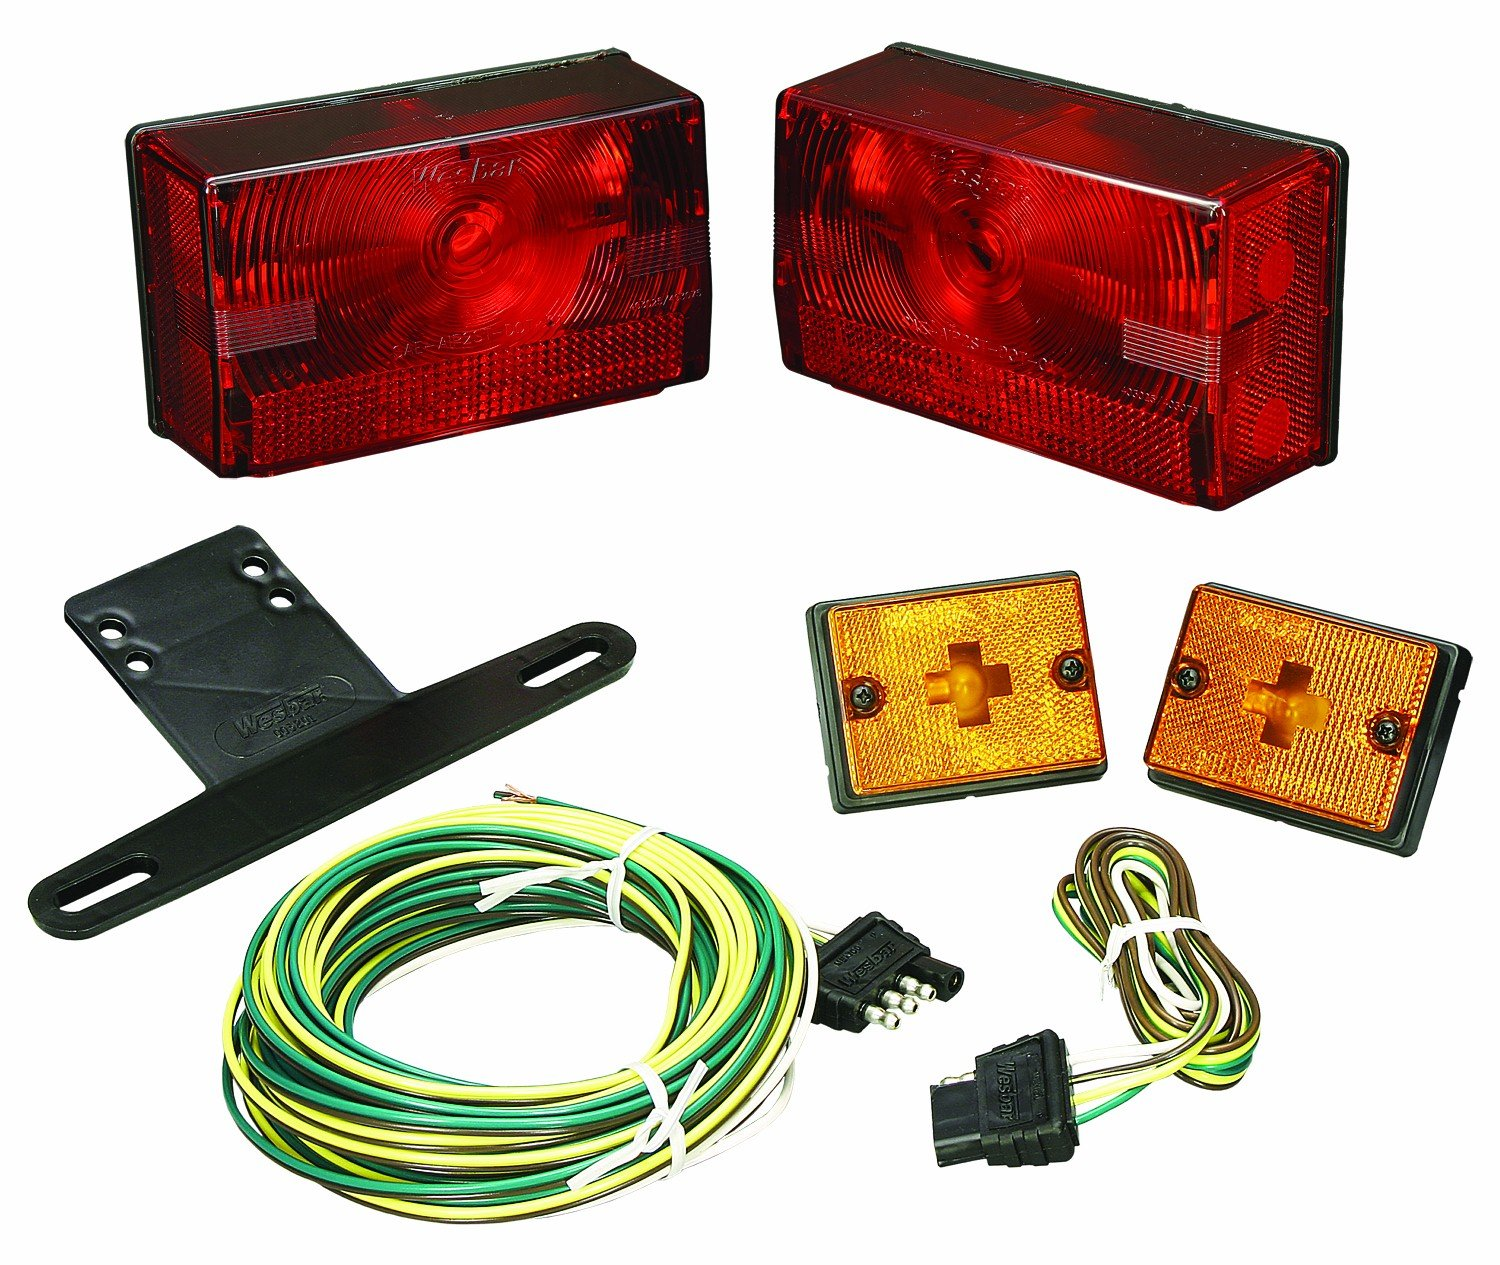 Wesbar 407515 Submersible Tail Light Kit with Side Marker/Clearance Lights, Over 80-Inch